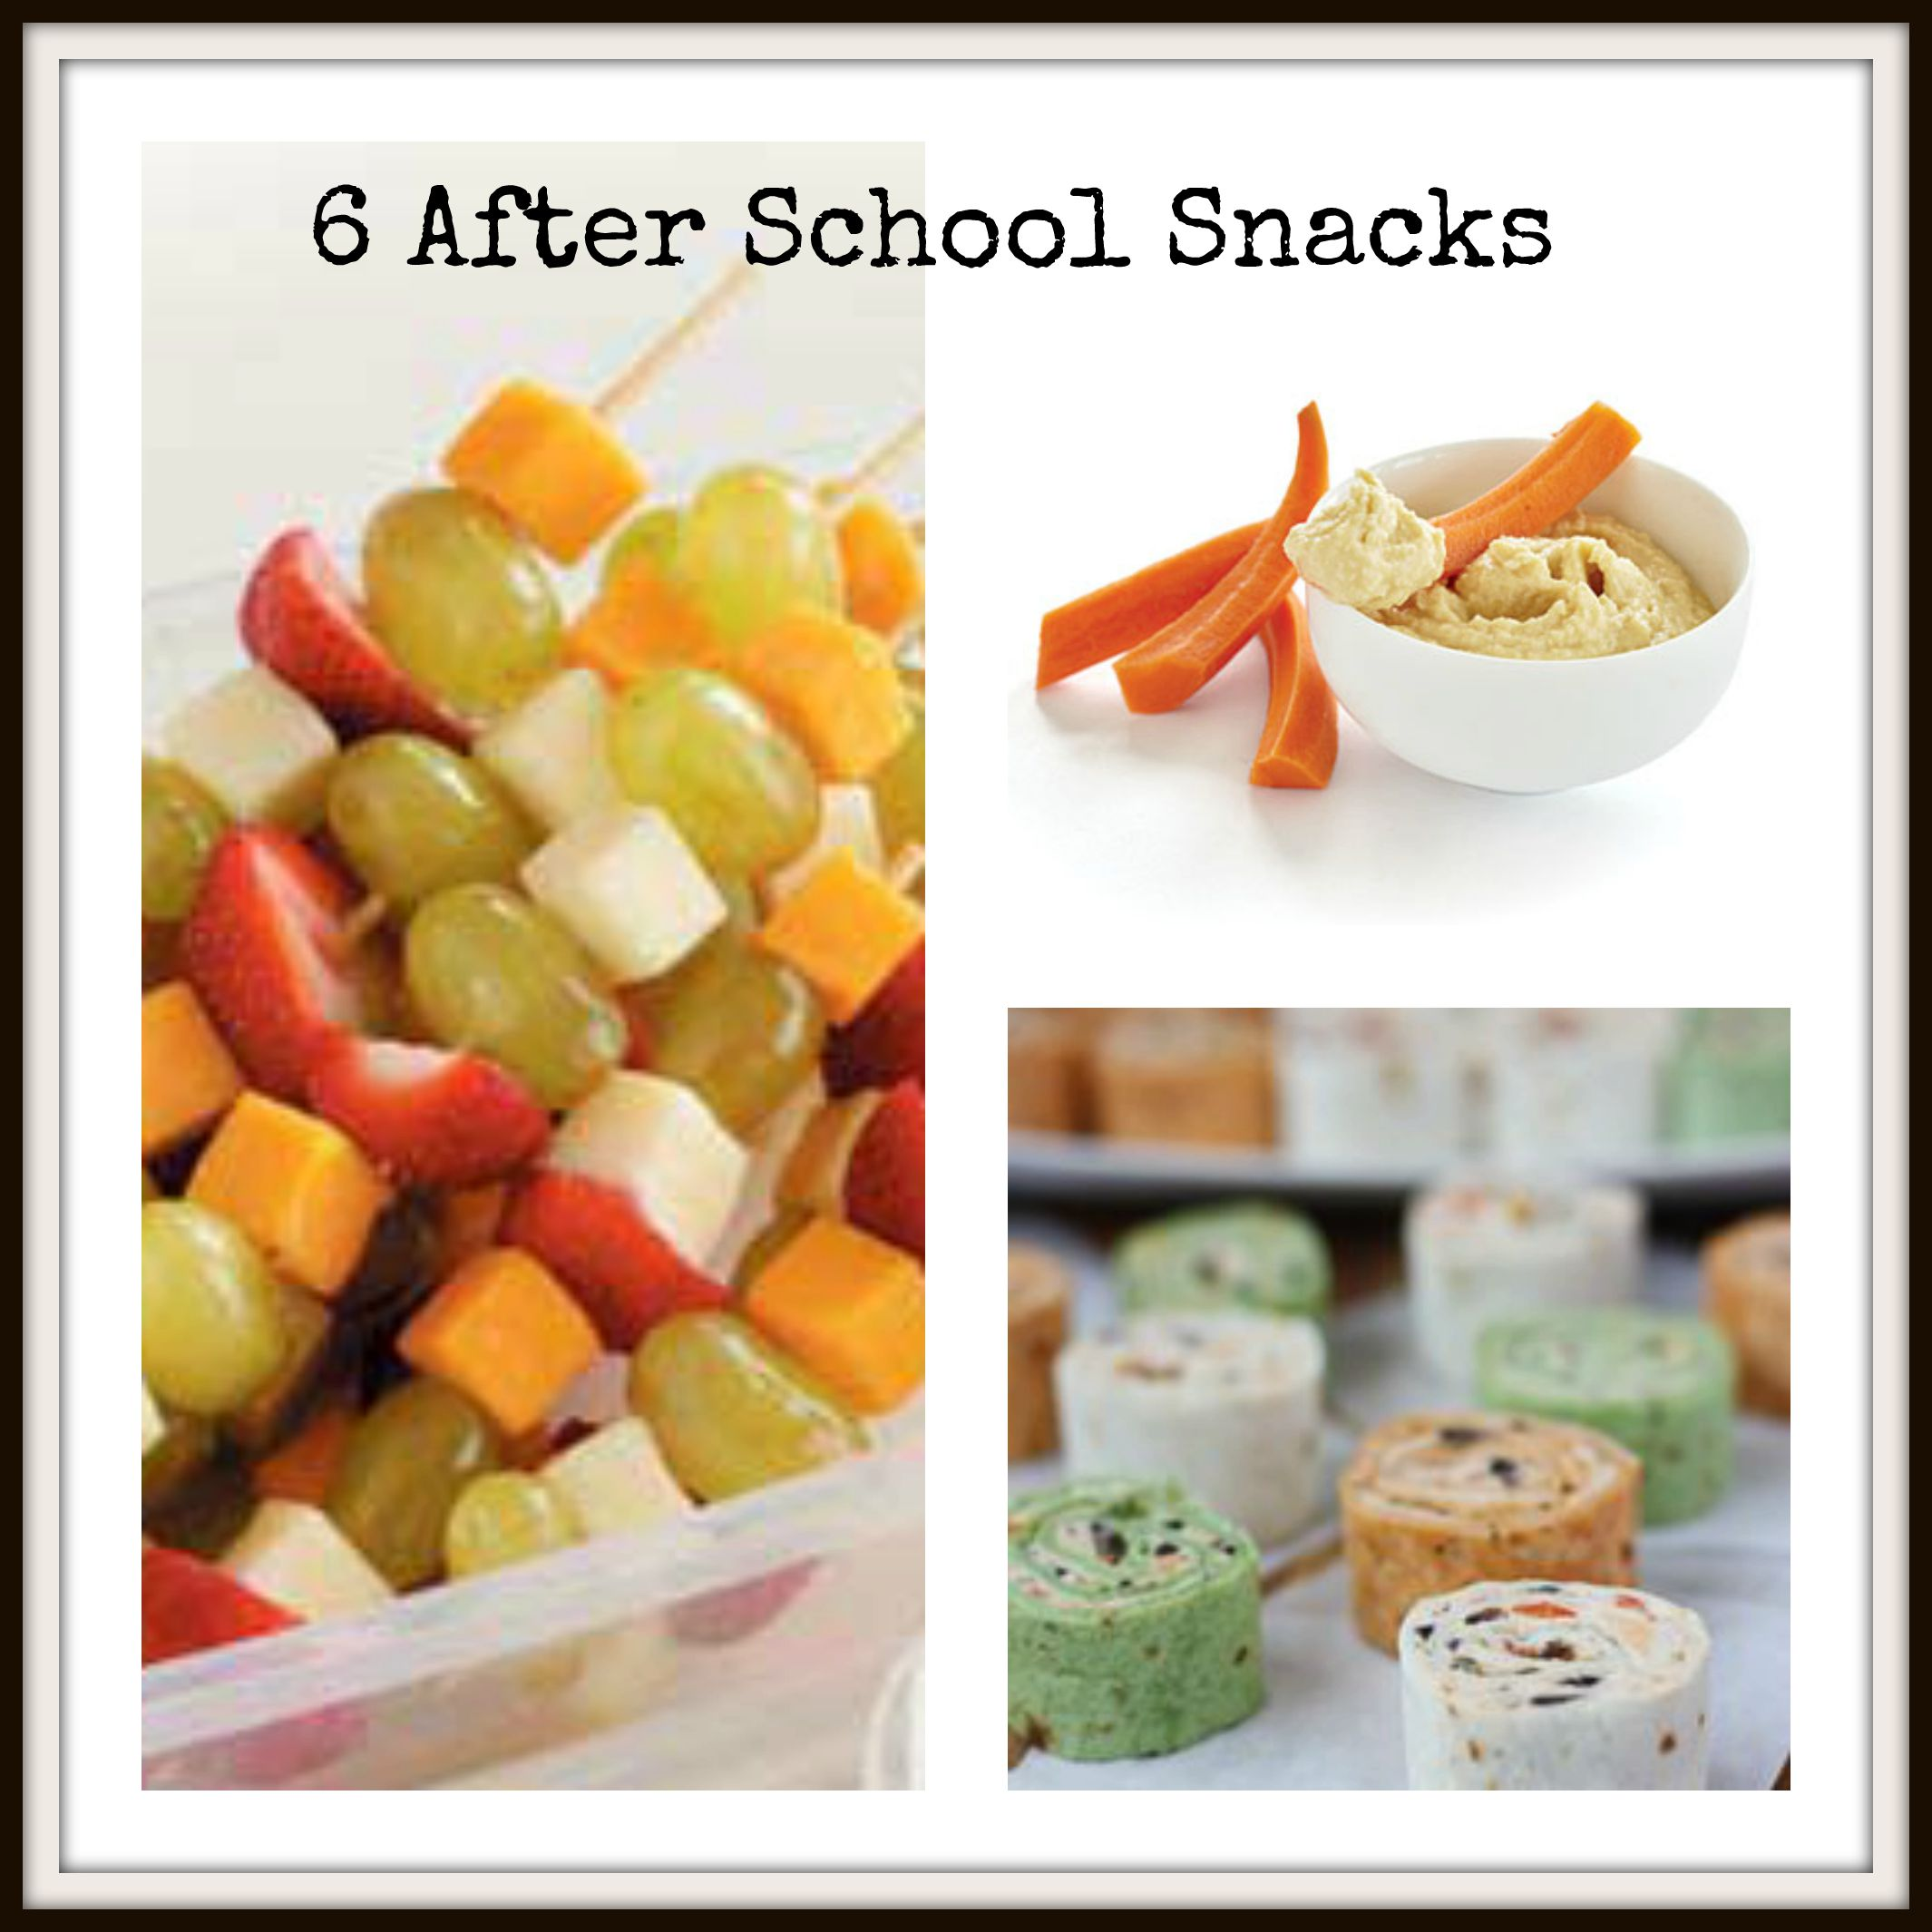 afterschoolsnacks